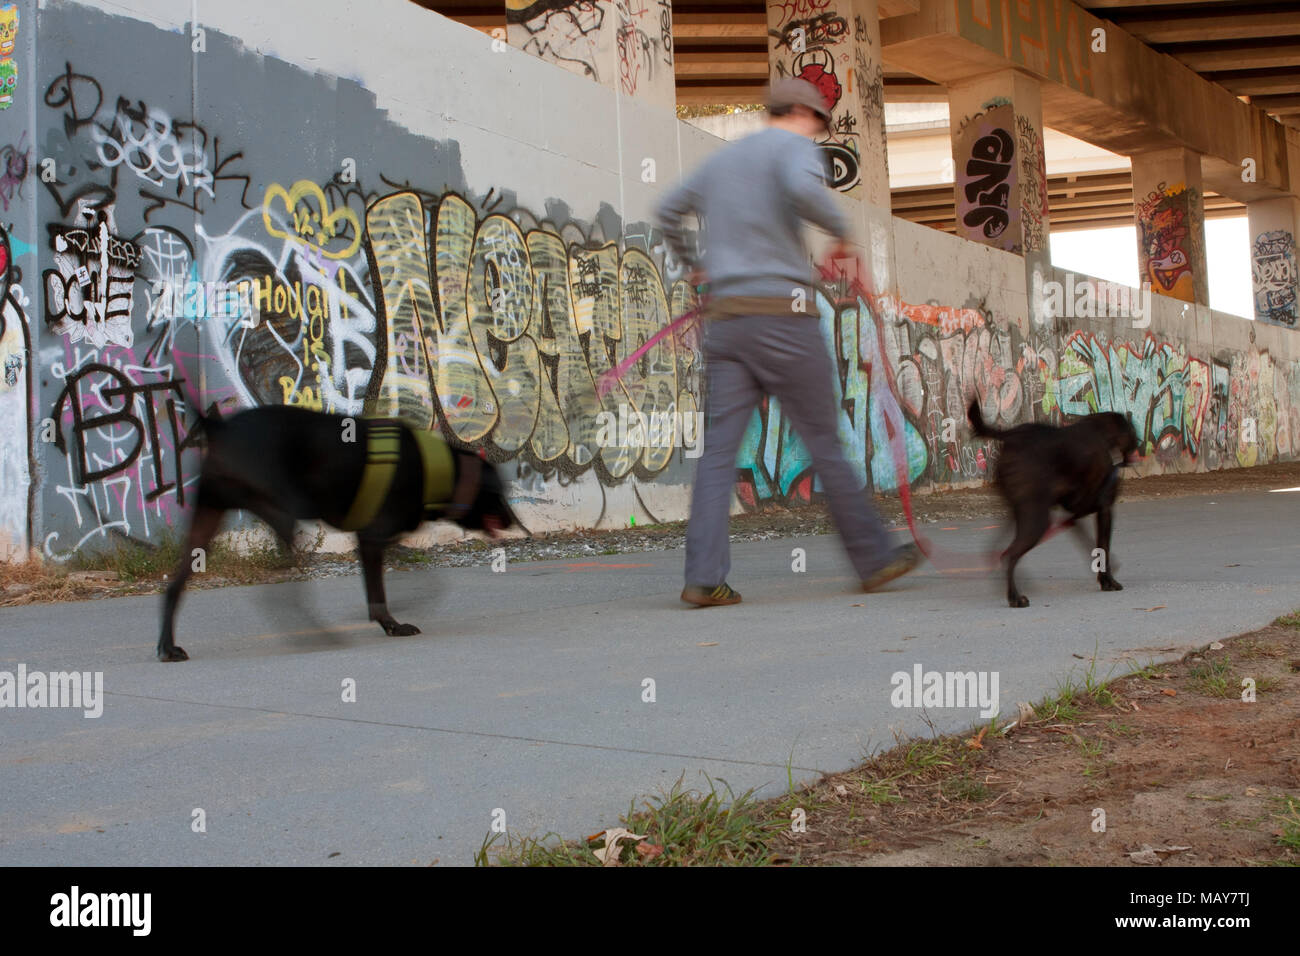 Motion blur of man walking two dogs along a graffiti covered overpass that is part of the 22-mile Atlanta Beltline, on November 2, 2013 in Atlanta, GA. - Stock Image